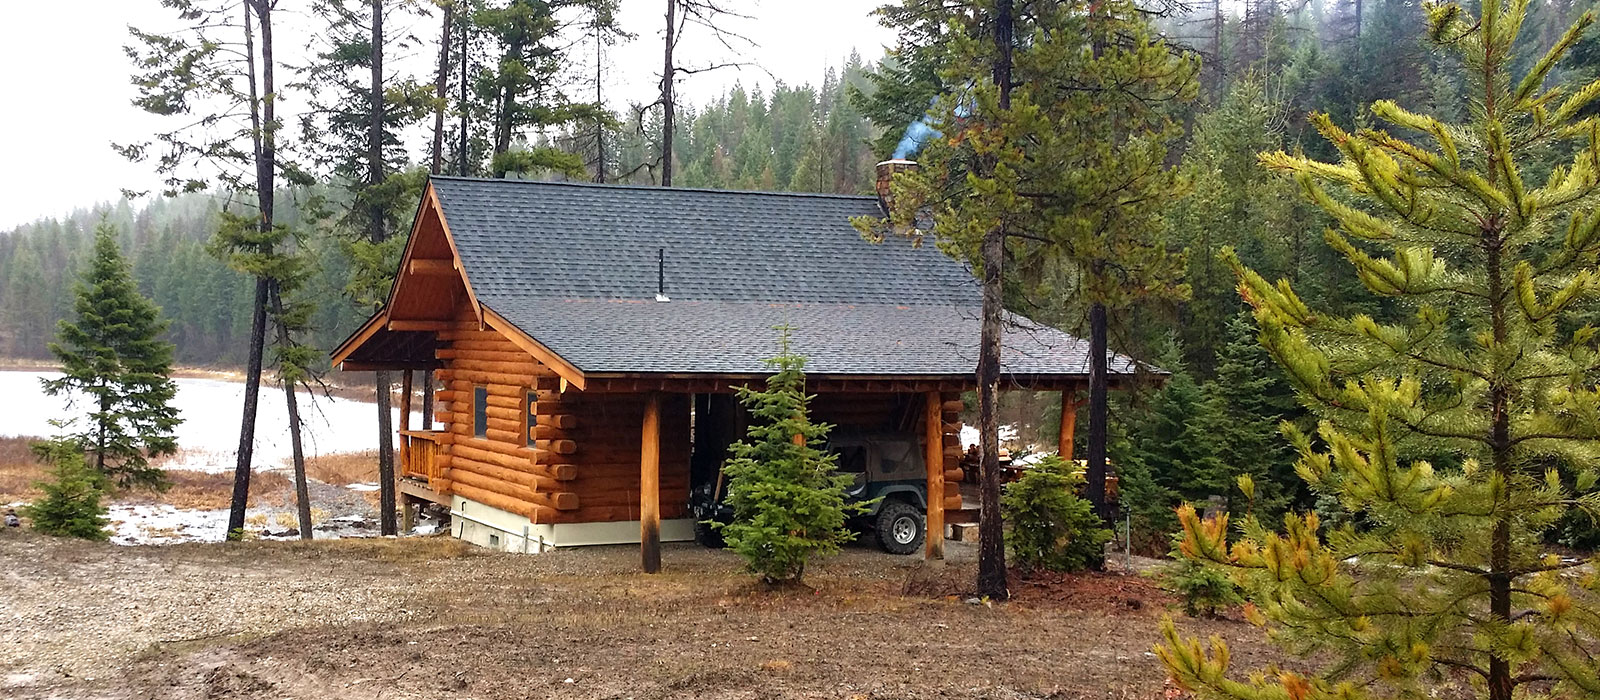 Lake front cabin in Montana for sale